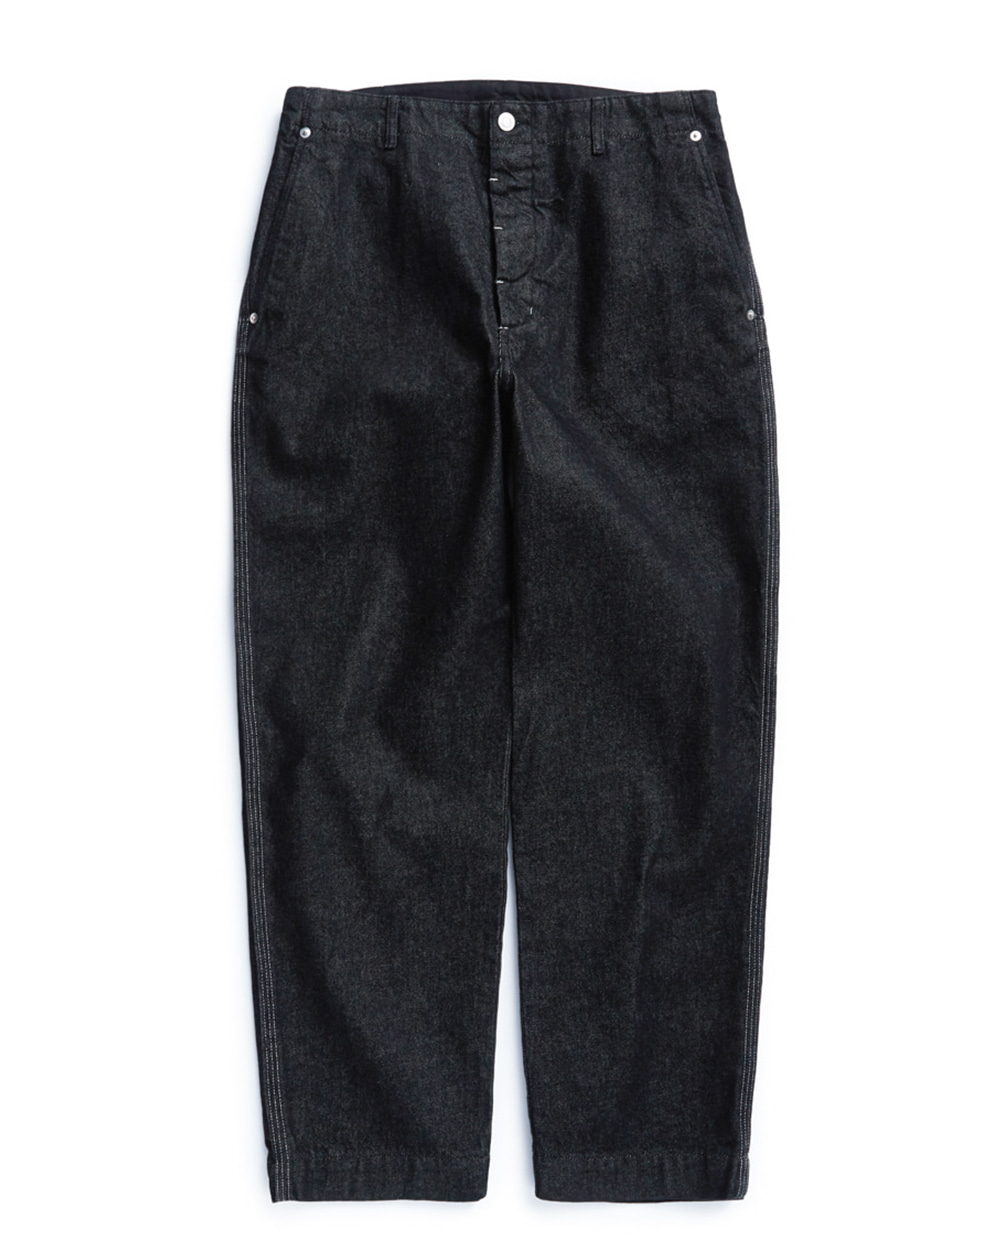 언어펙티드 CONTRAST STITCH PANTS (Black)